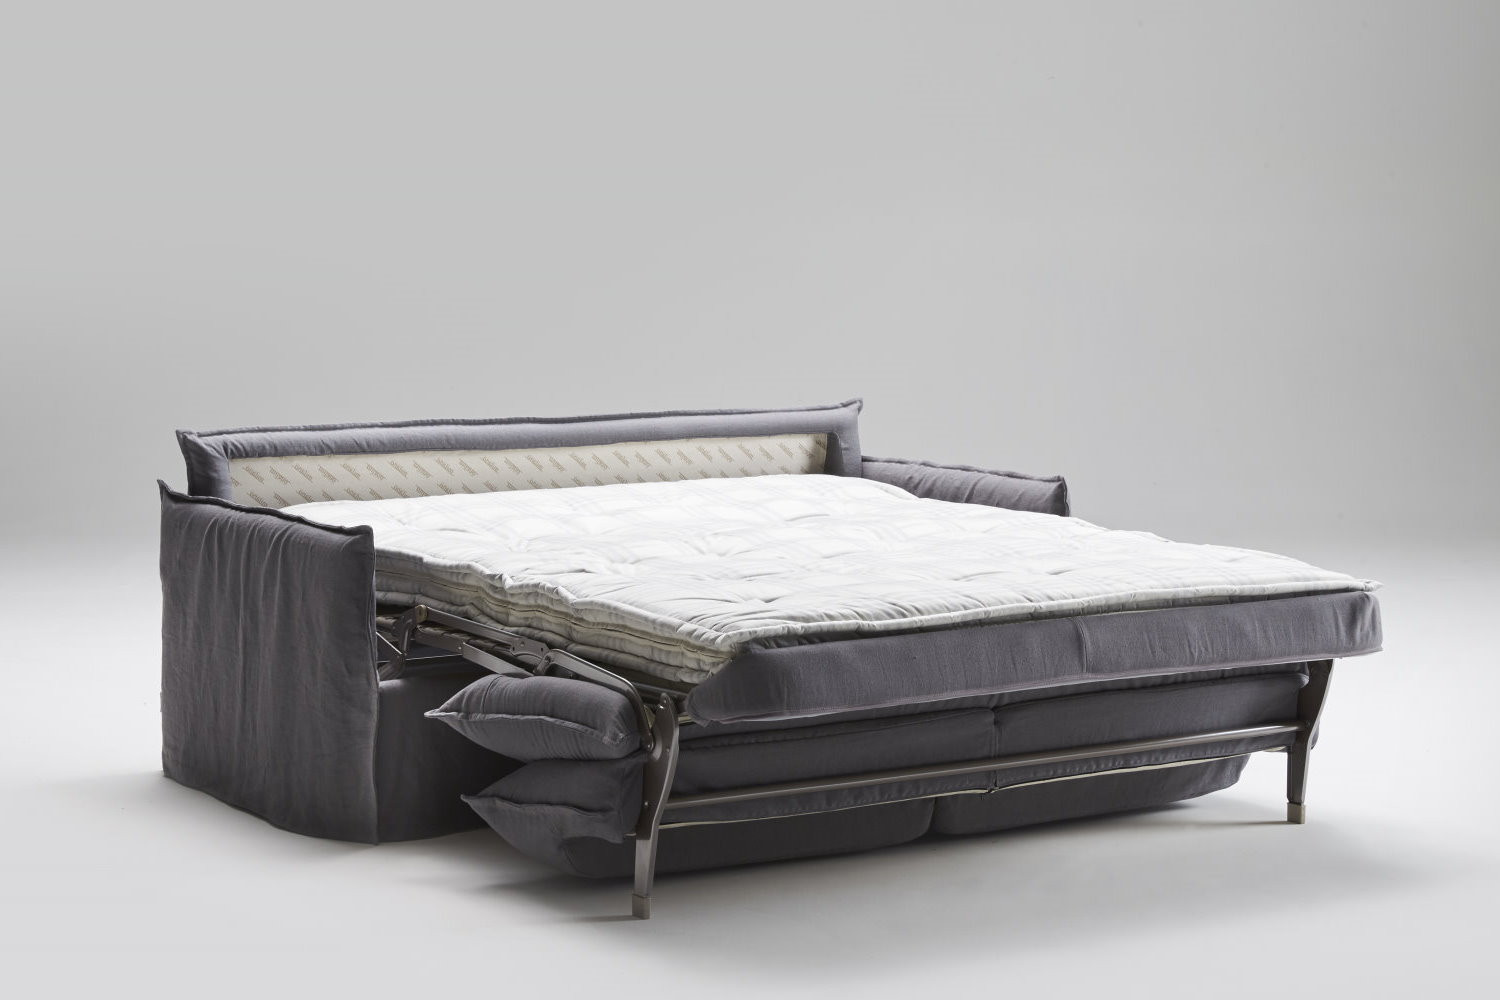 Canap convertible confortable clarke - Canape convertible confortable pour dormir ...